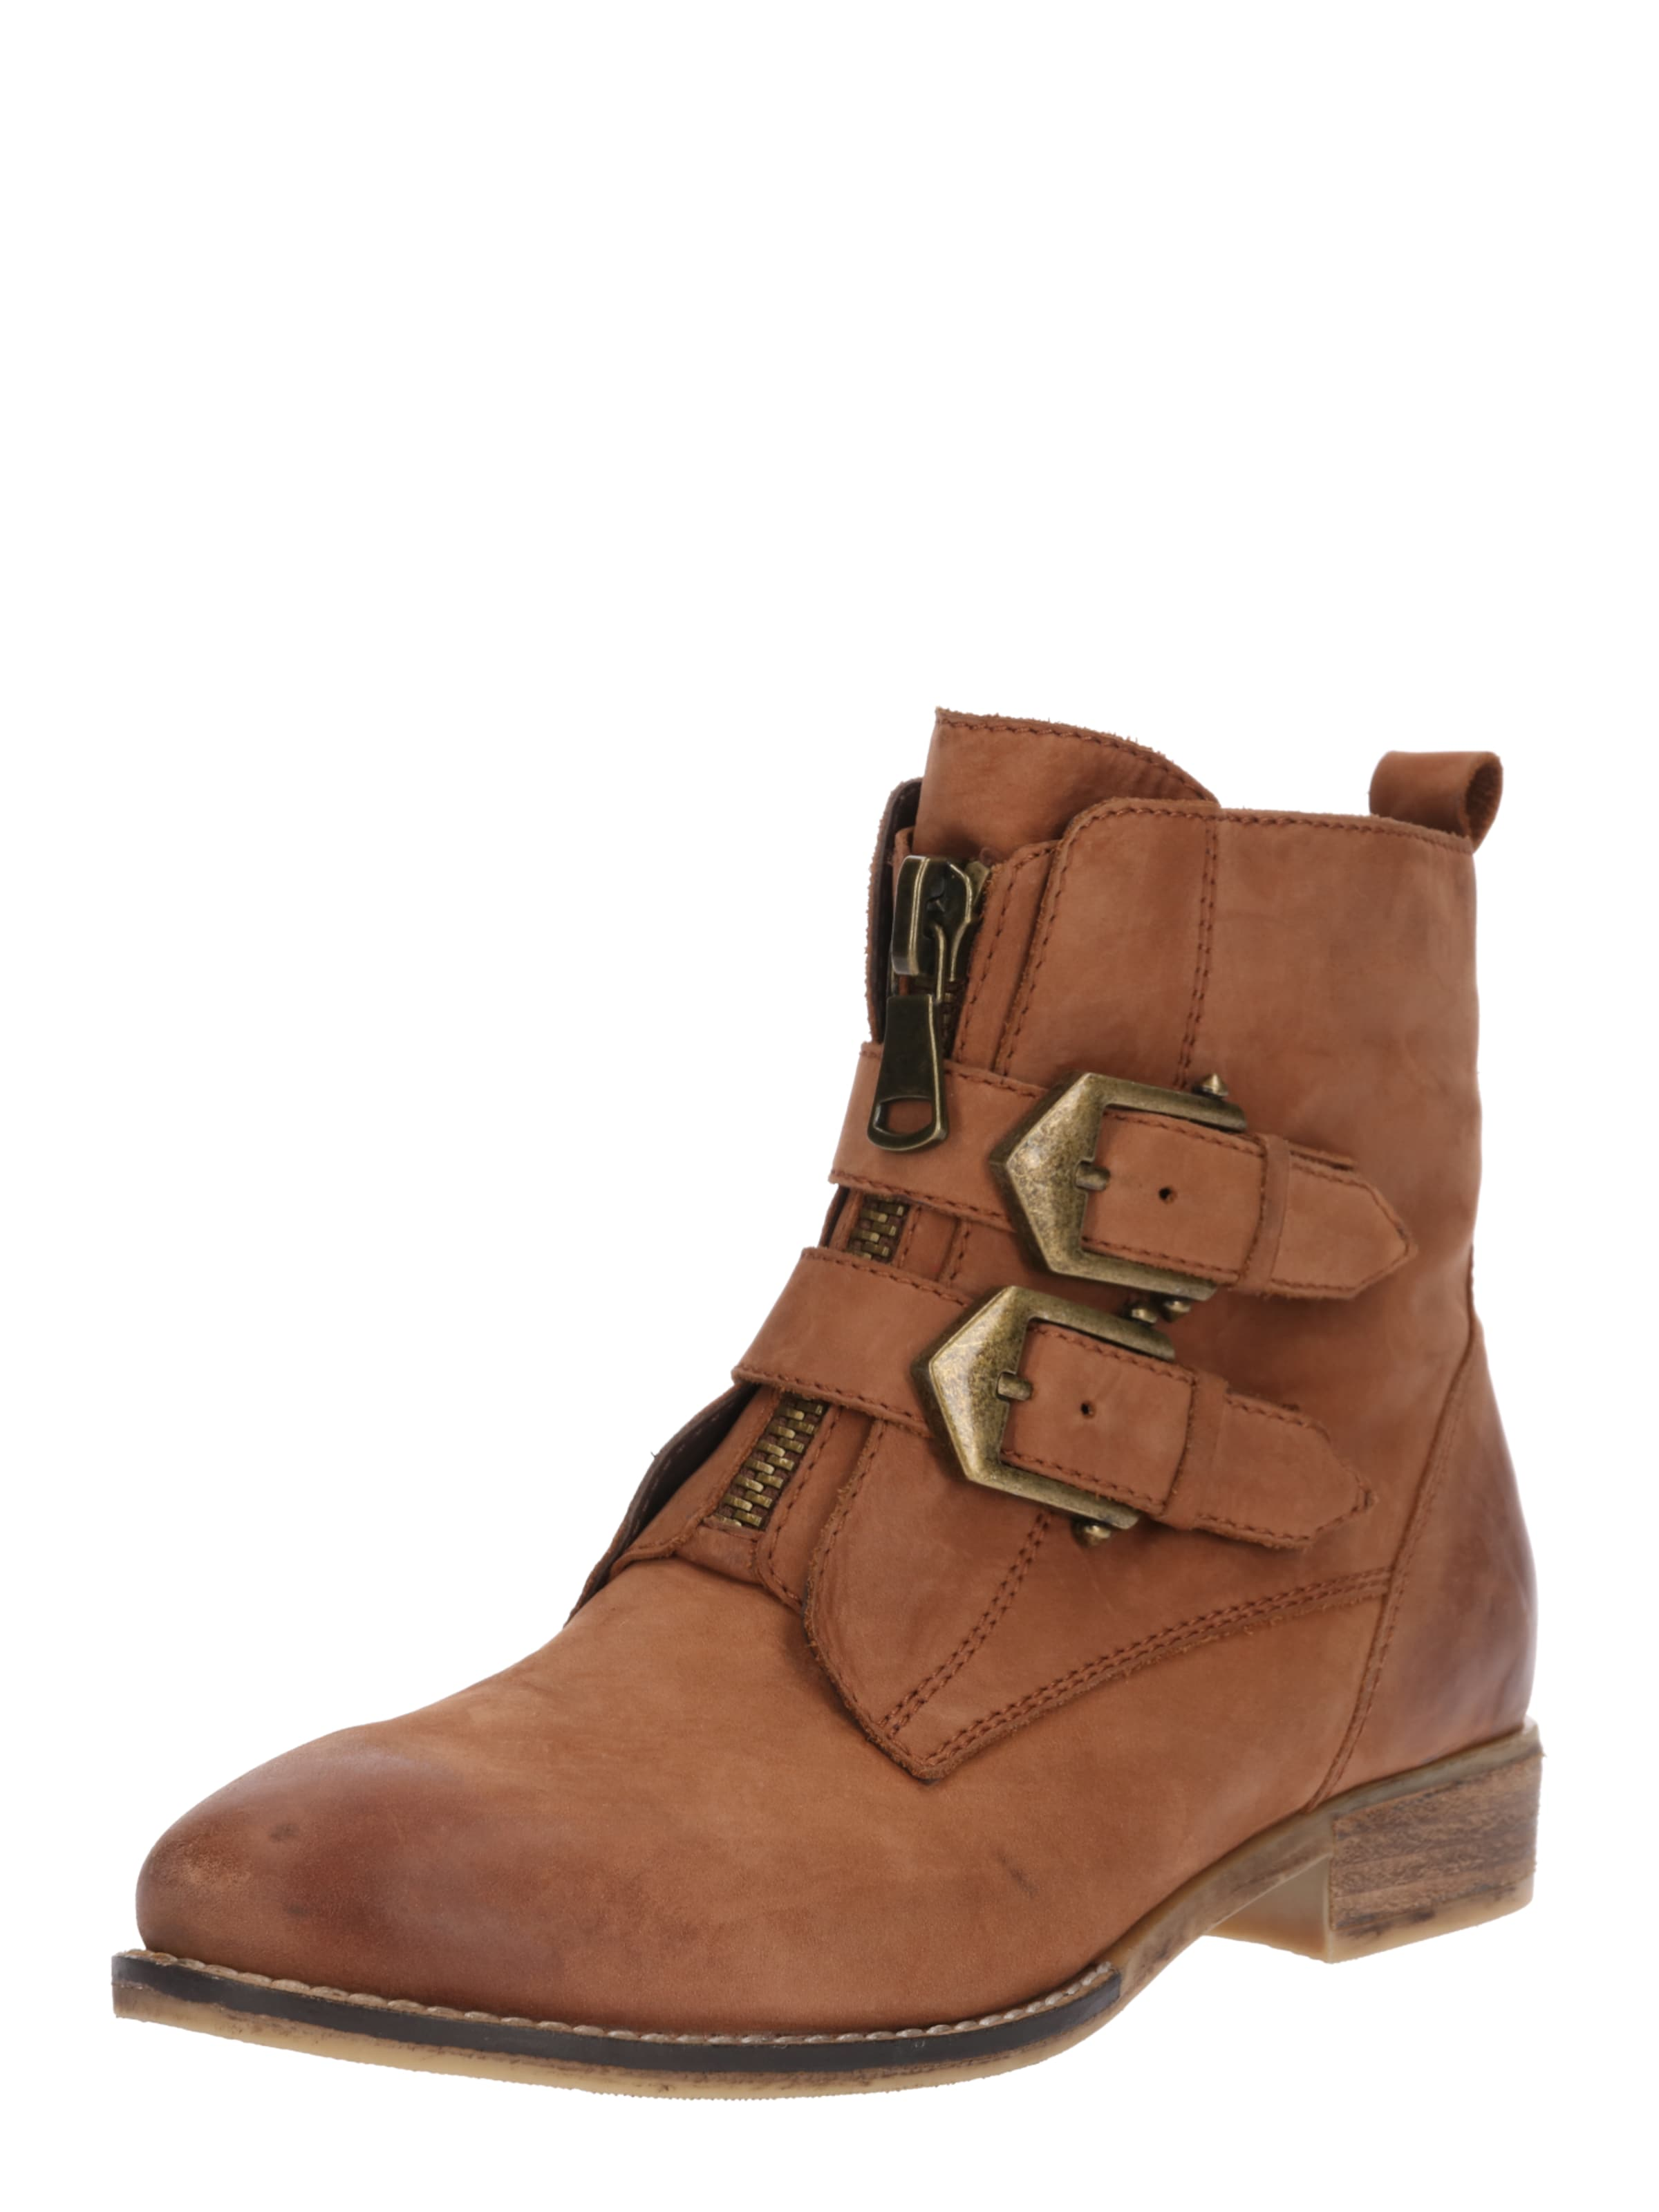 You 'shirin' Stiefelette In Cognac About hCtQdrs